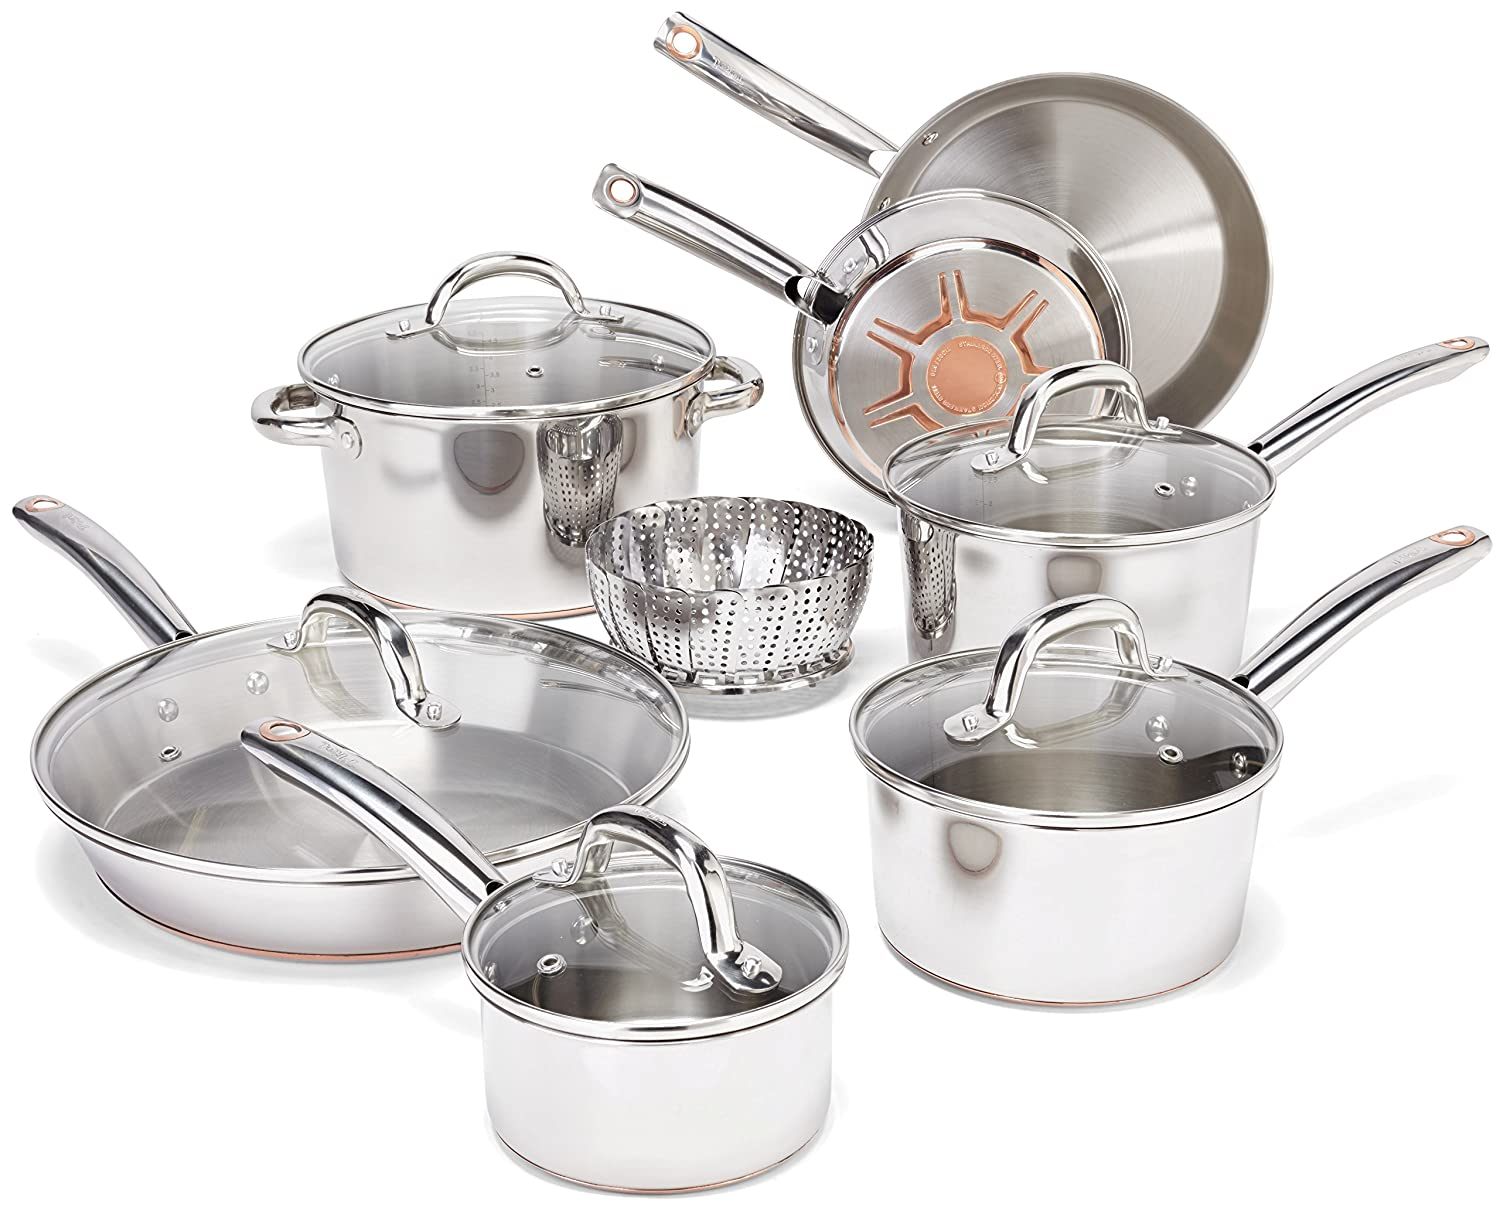 T-fall Ultimate Stainless 13-piece cookware set